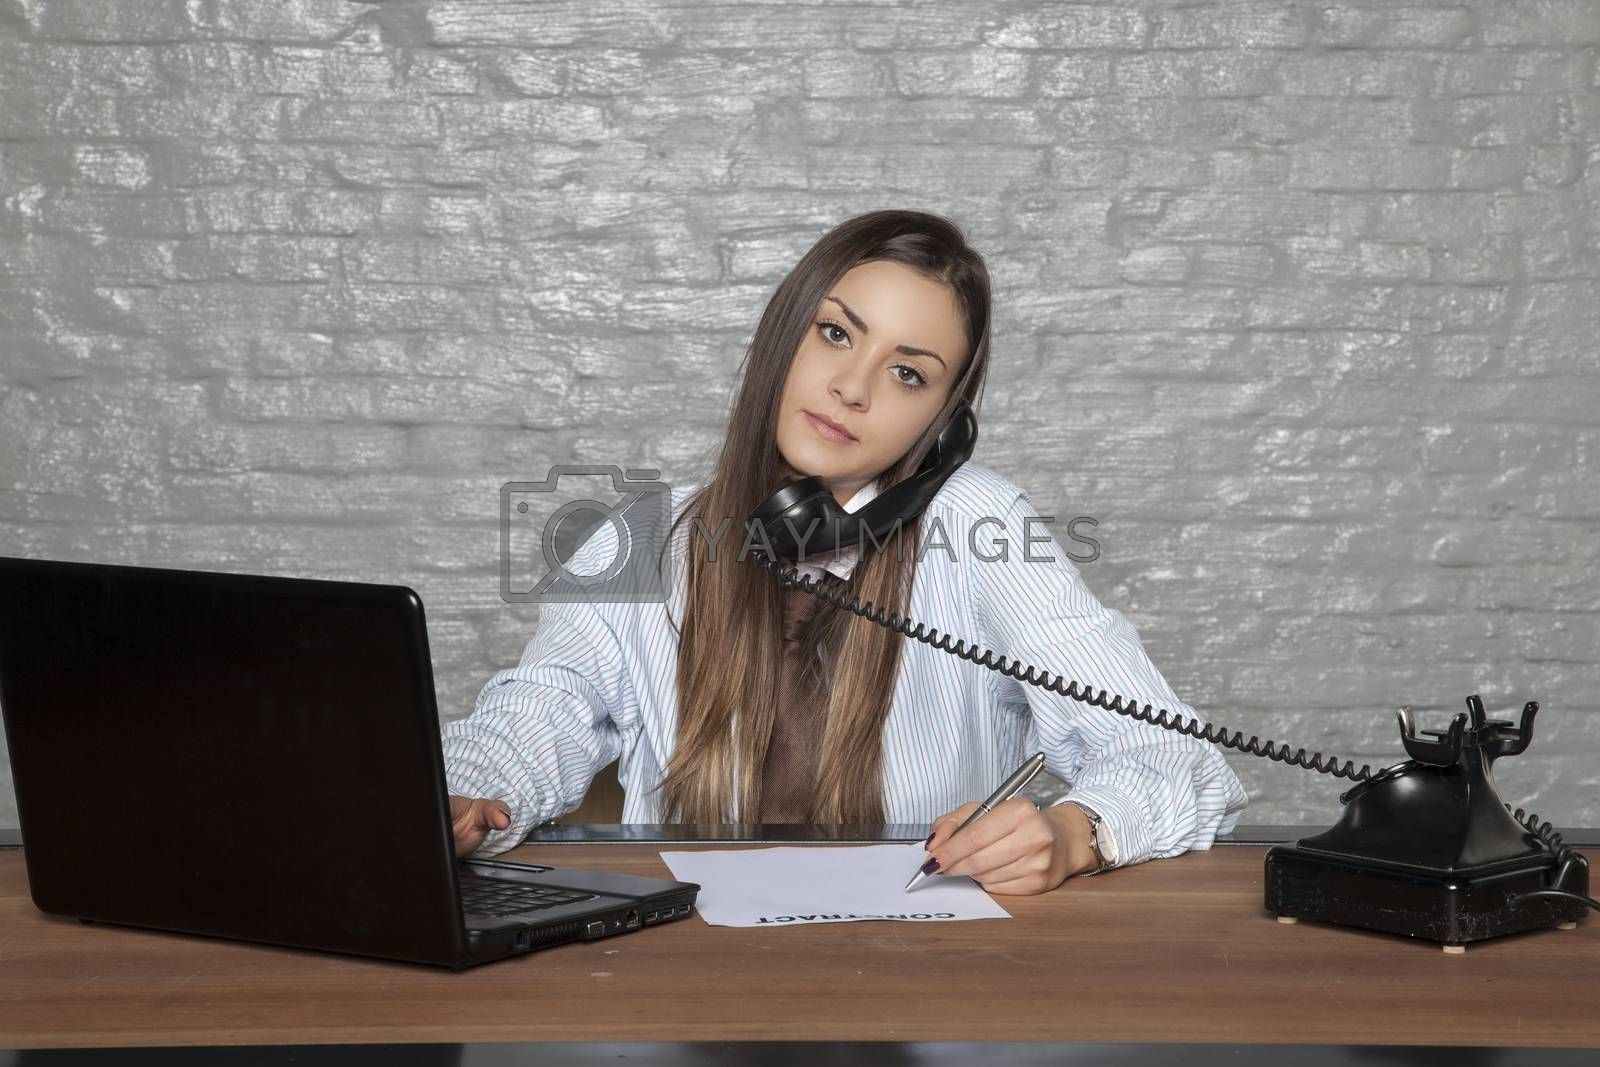 telephone conversation and signing documents at the same time